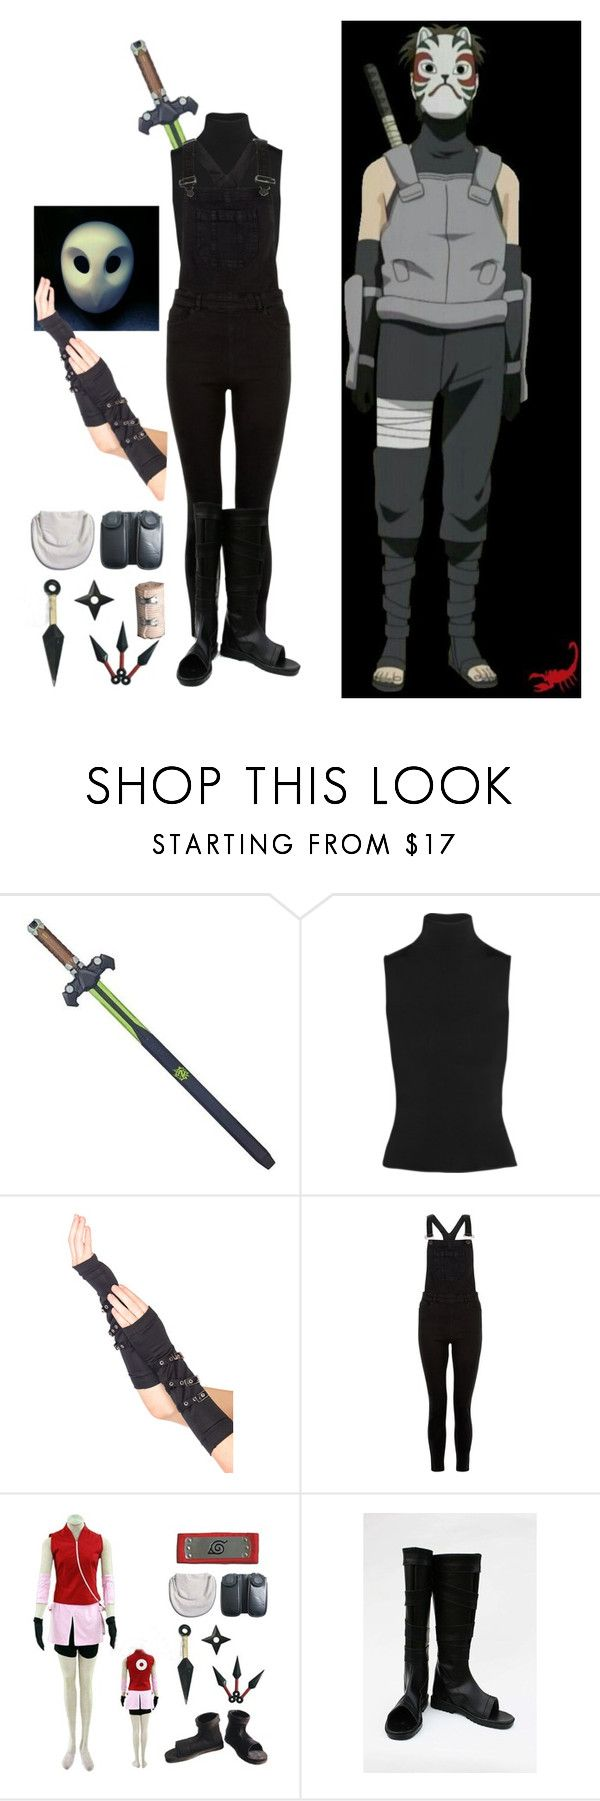 """MY FIRST COSTUME PARTY  (Anbu Black Ops)"" by appleface80 ❤ liked on Polyvore featuring Acne Studios, New Look, men's fashion and menswear"